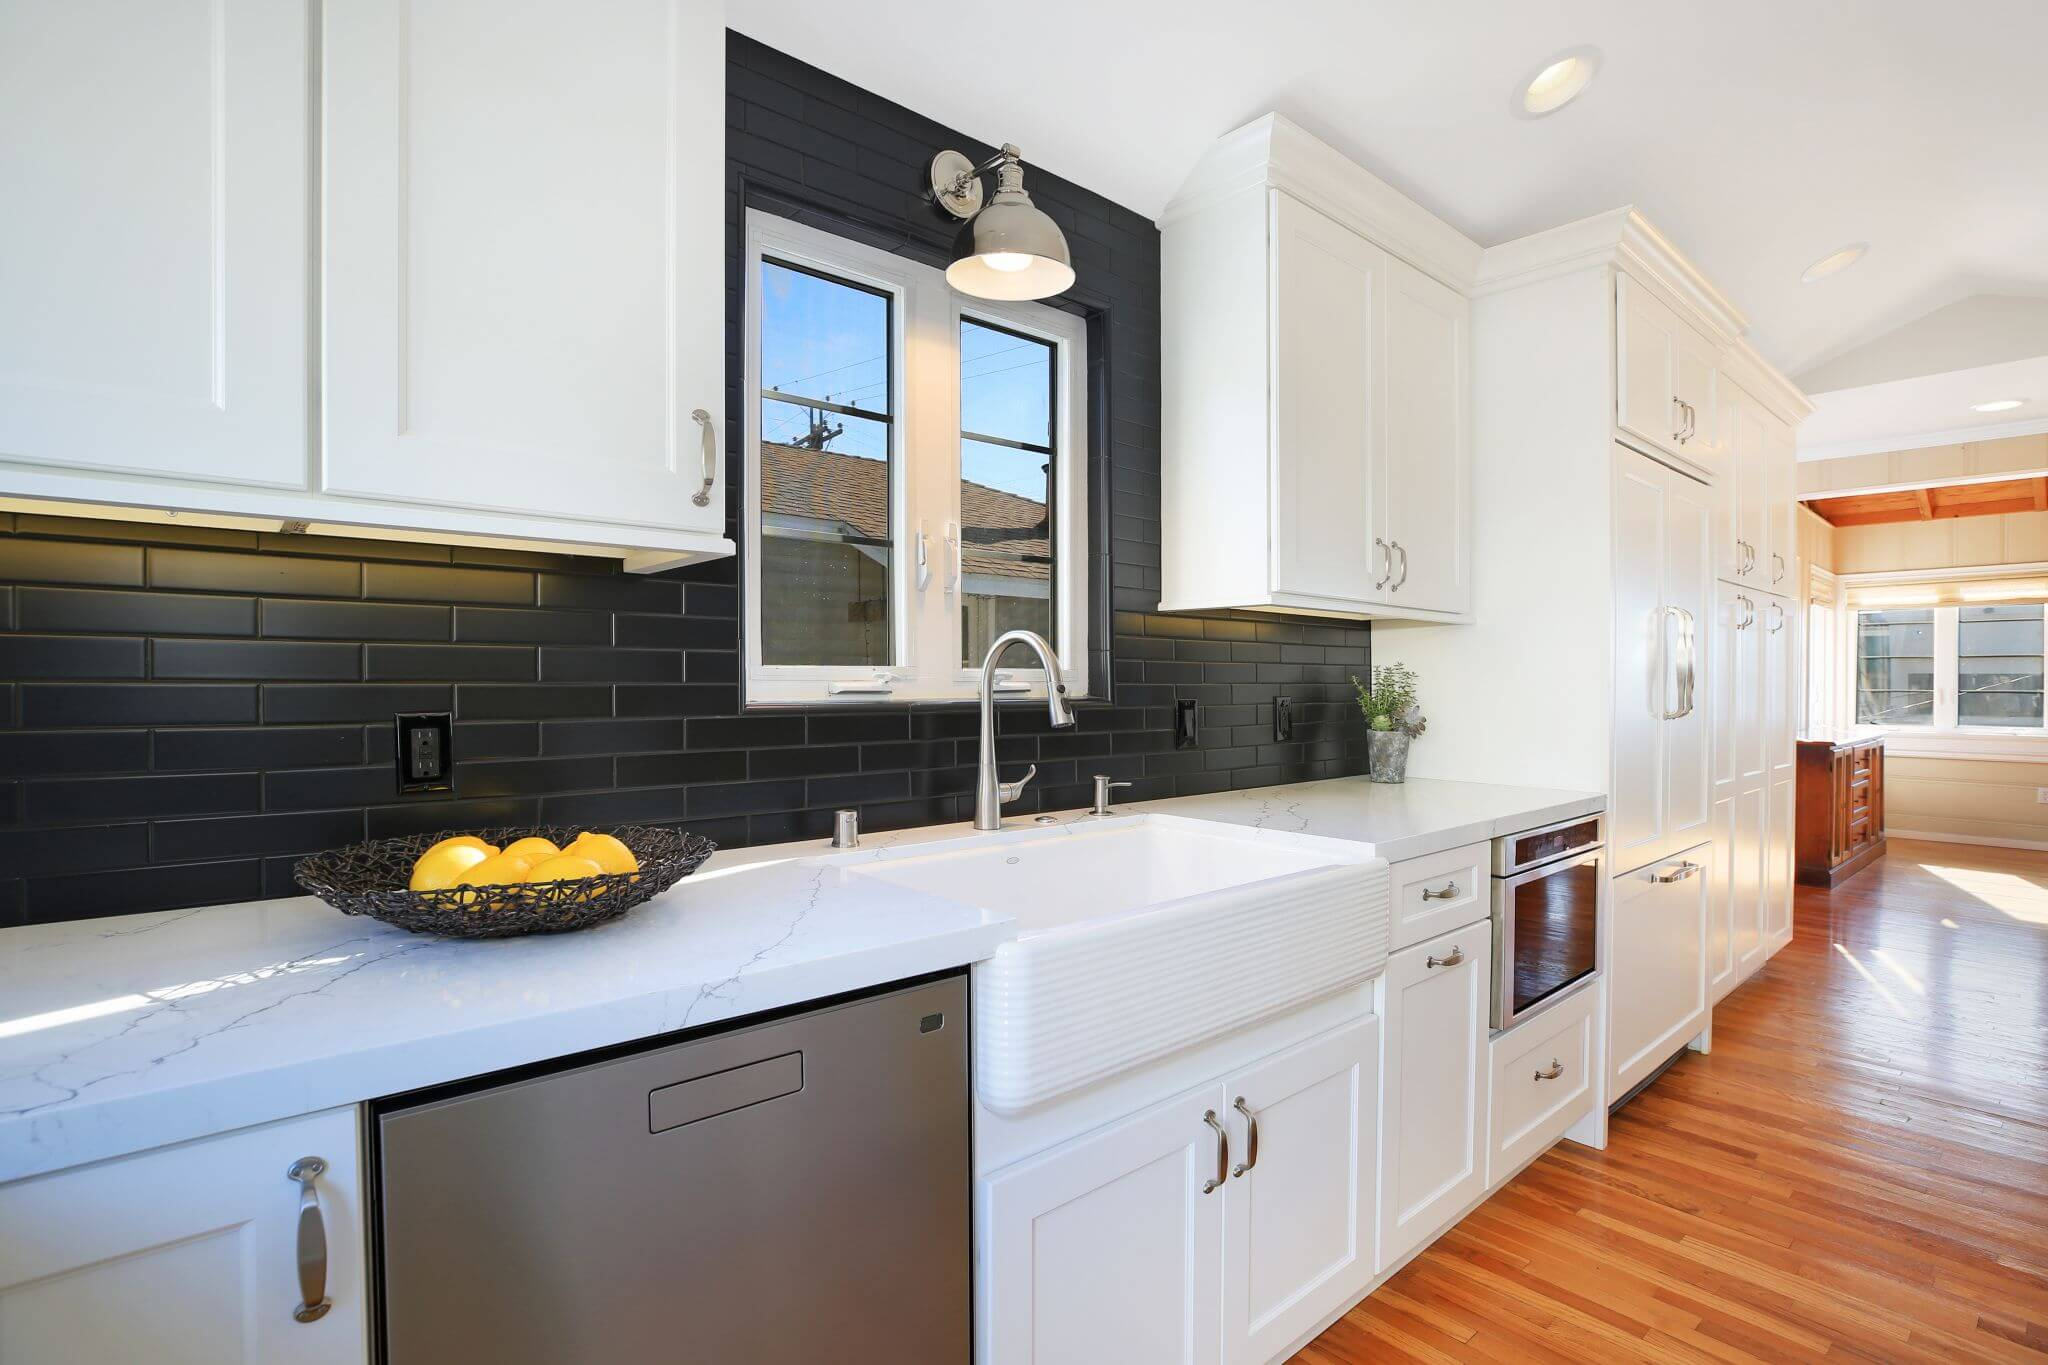 galley style kitchen with white cabinets and and black backsplash